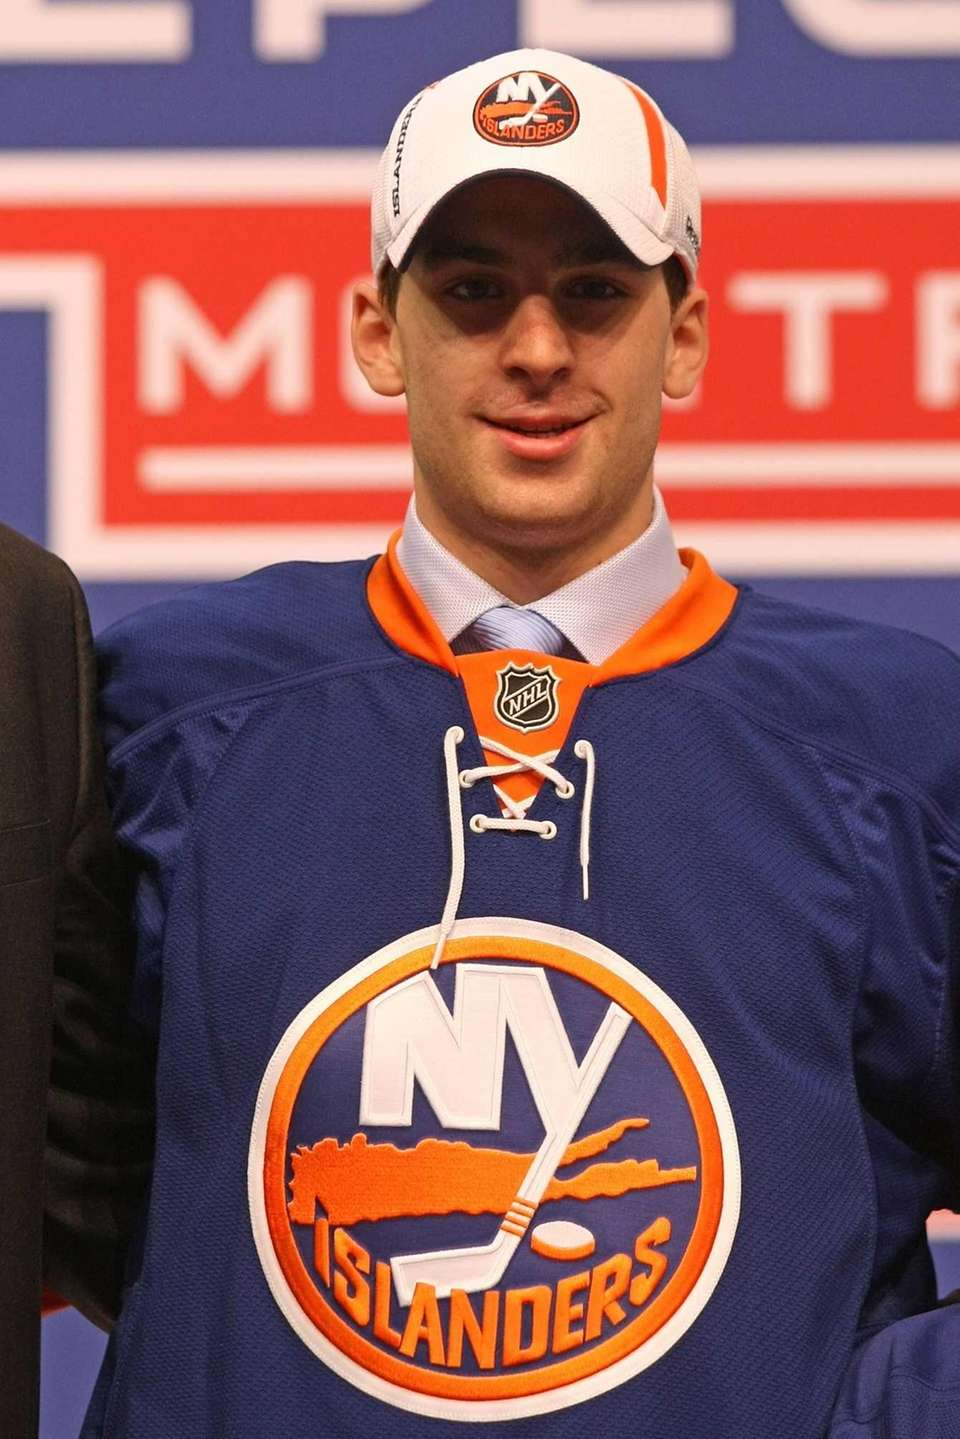 John Tavares stands on stage after being picked